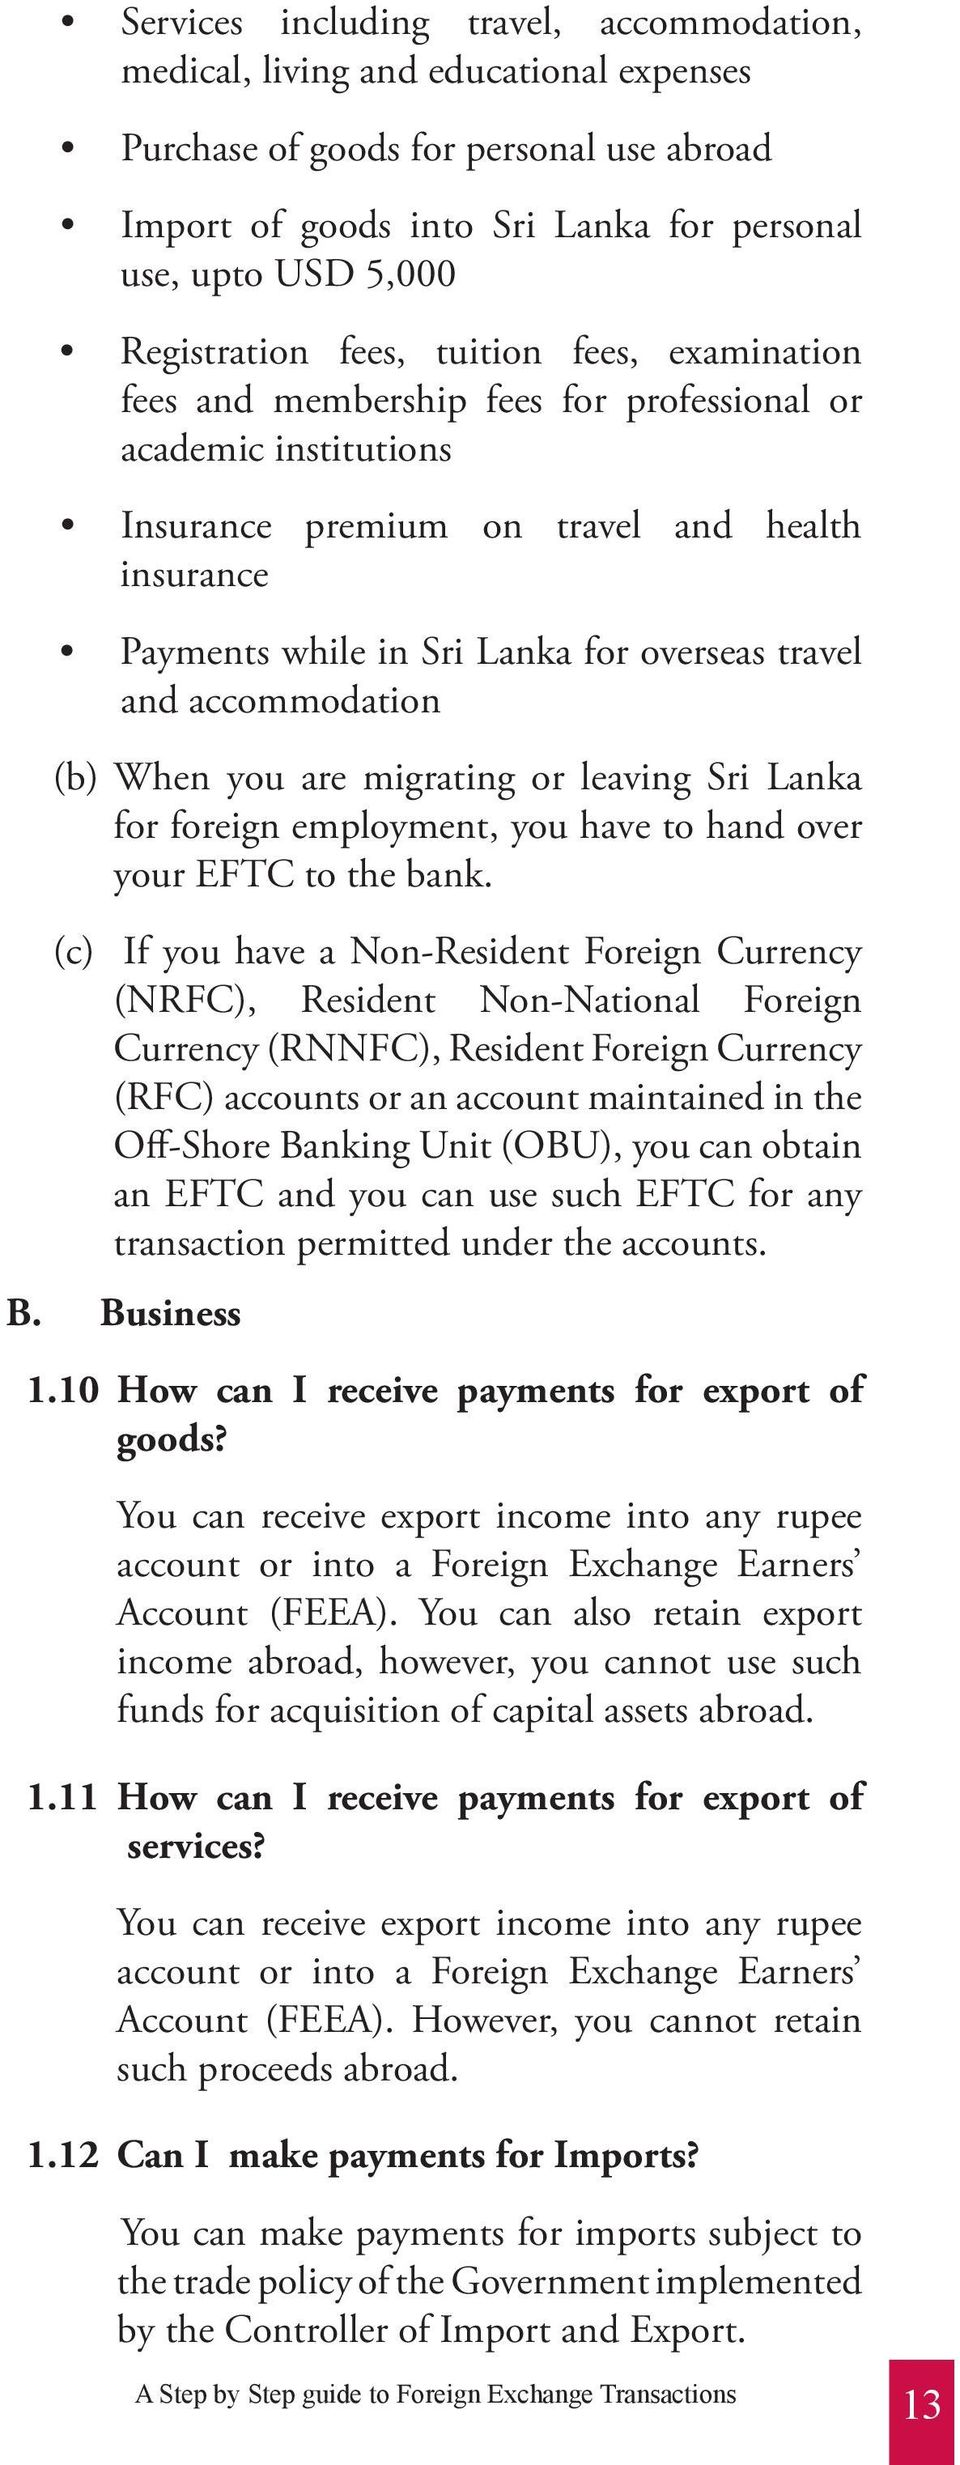 overseas travel and accommodation (b) When you are migrating or leaving Sri Lanka for foreign employment, you have to hand over your EFTC to the bank.